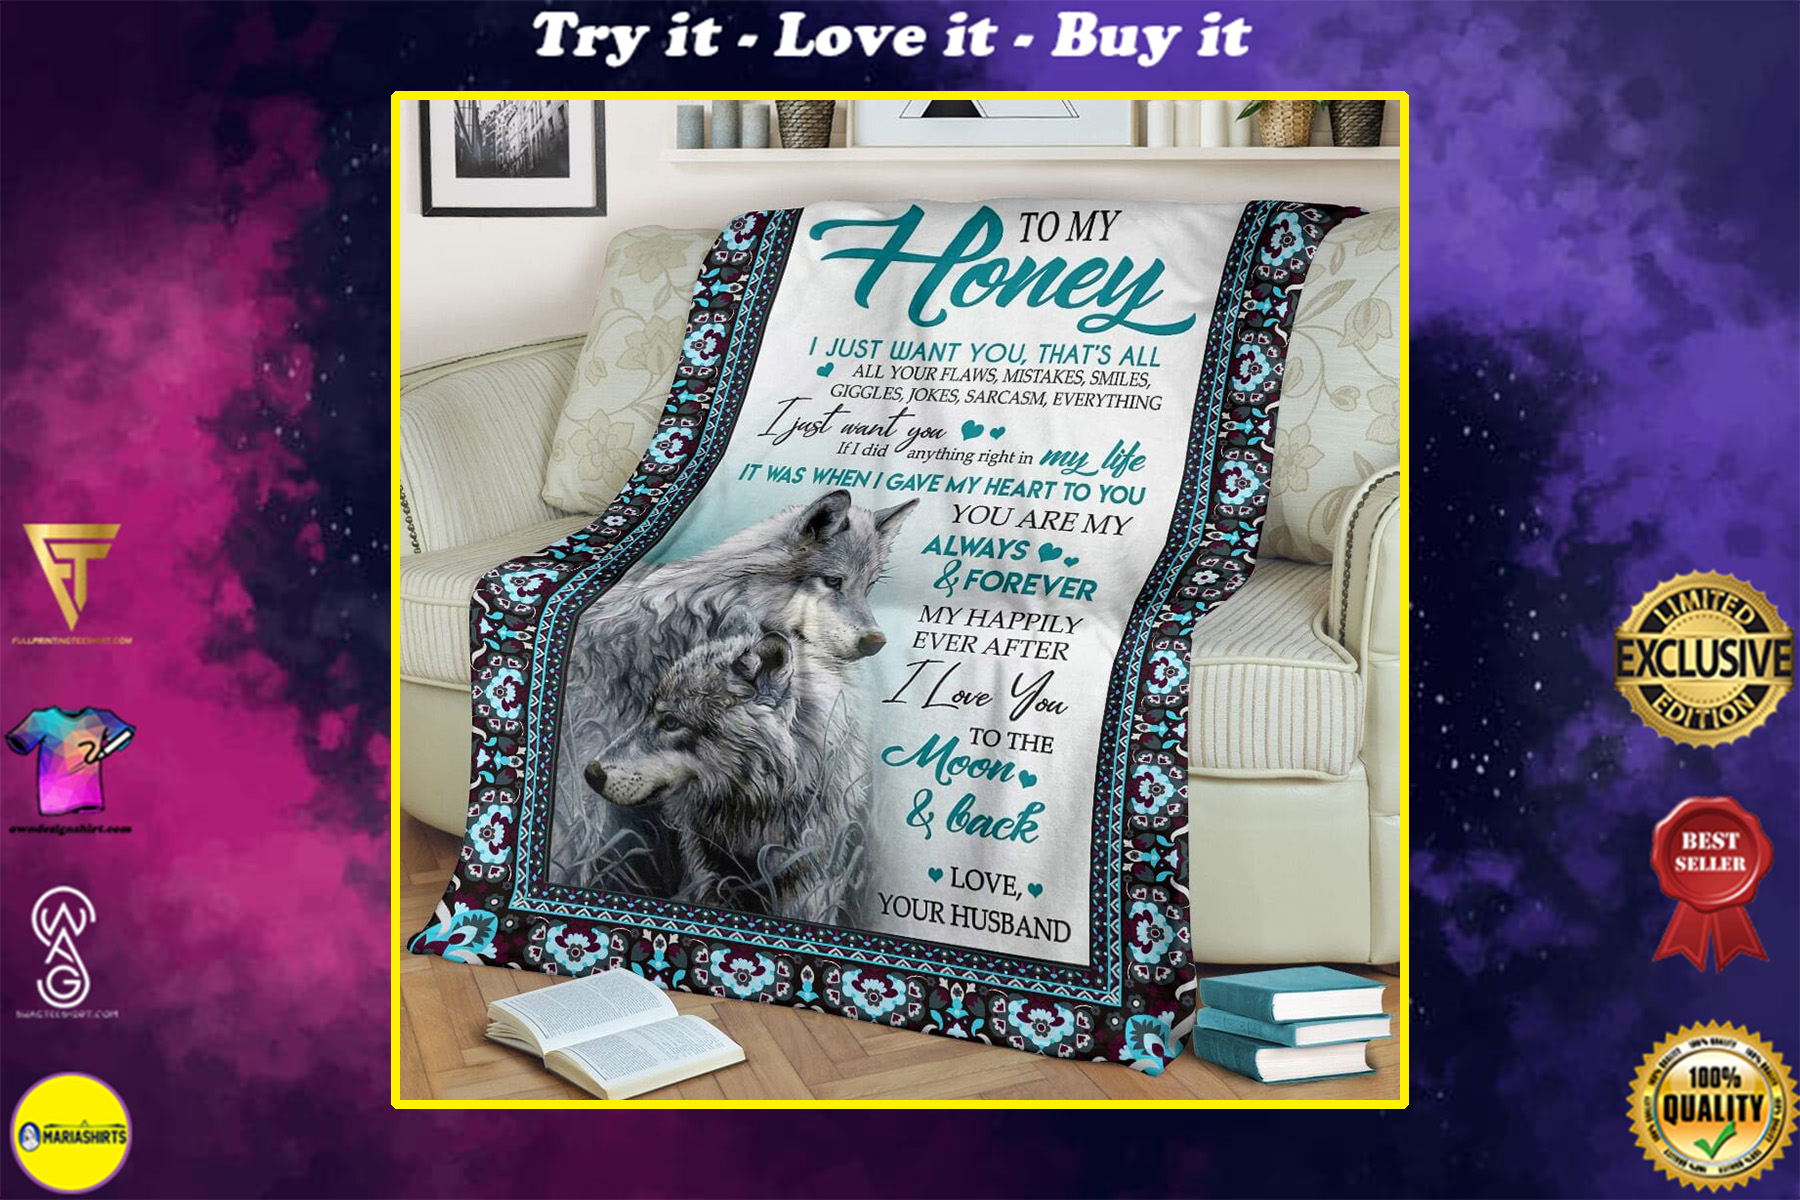 wolf message to my honey i love you yo the moon and back full printing blanket